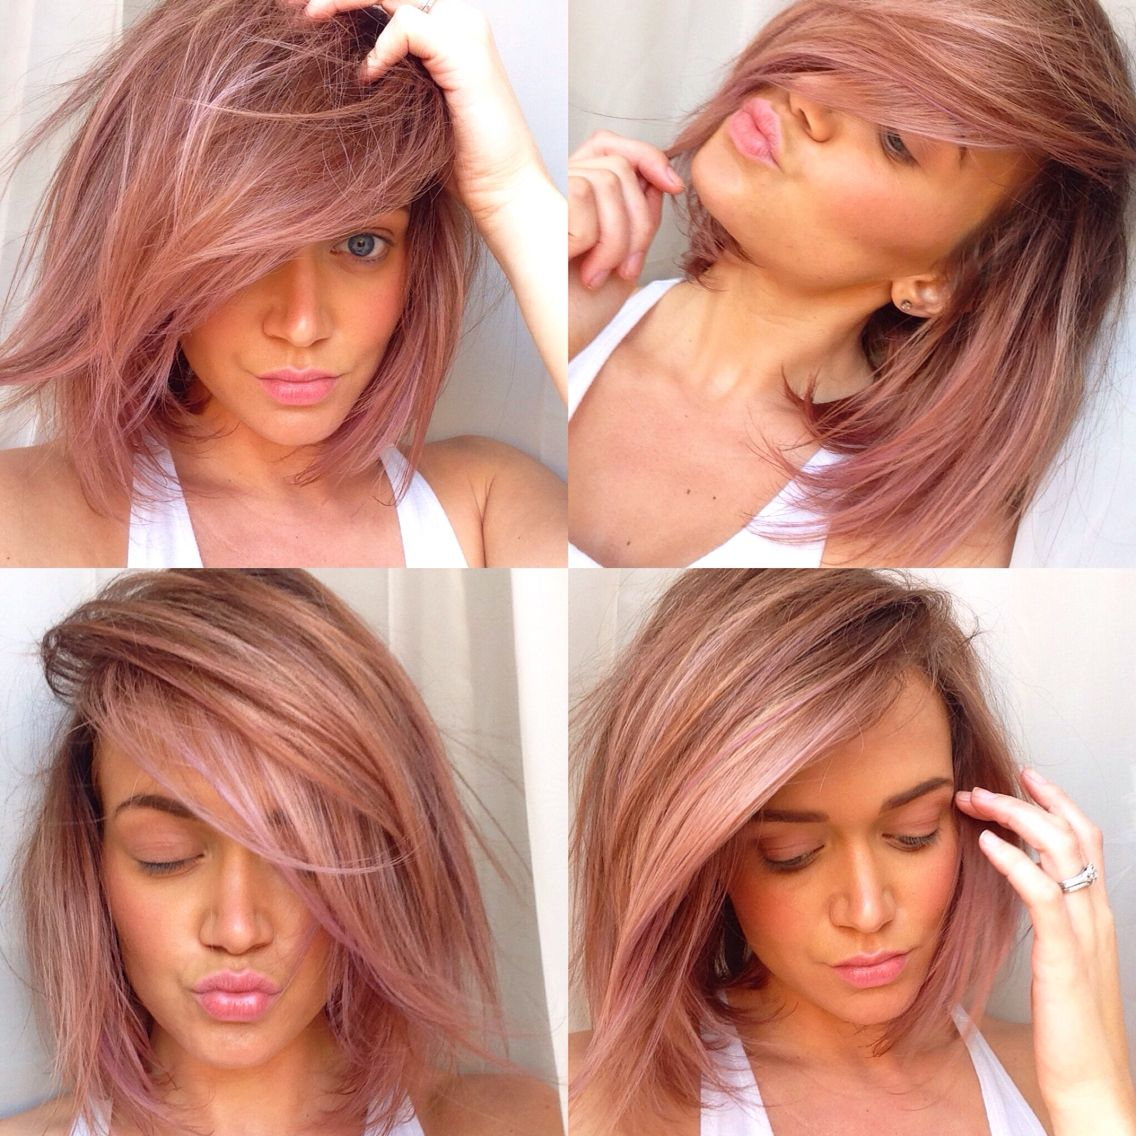 Pink Lavender Tint To Dirty Blonde Hair With Balayage Highlights